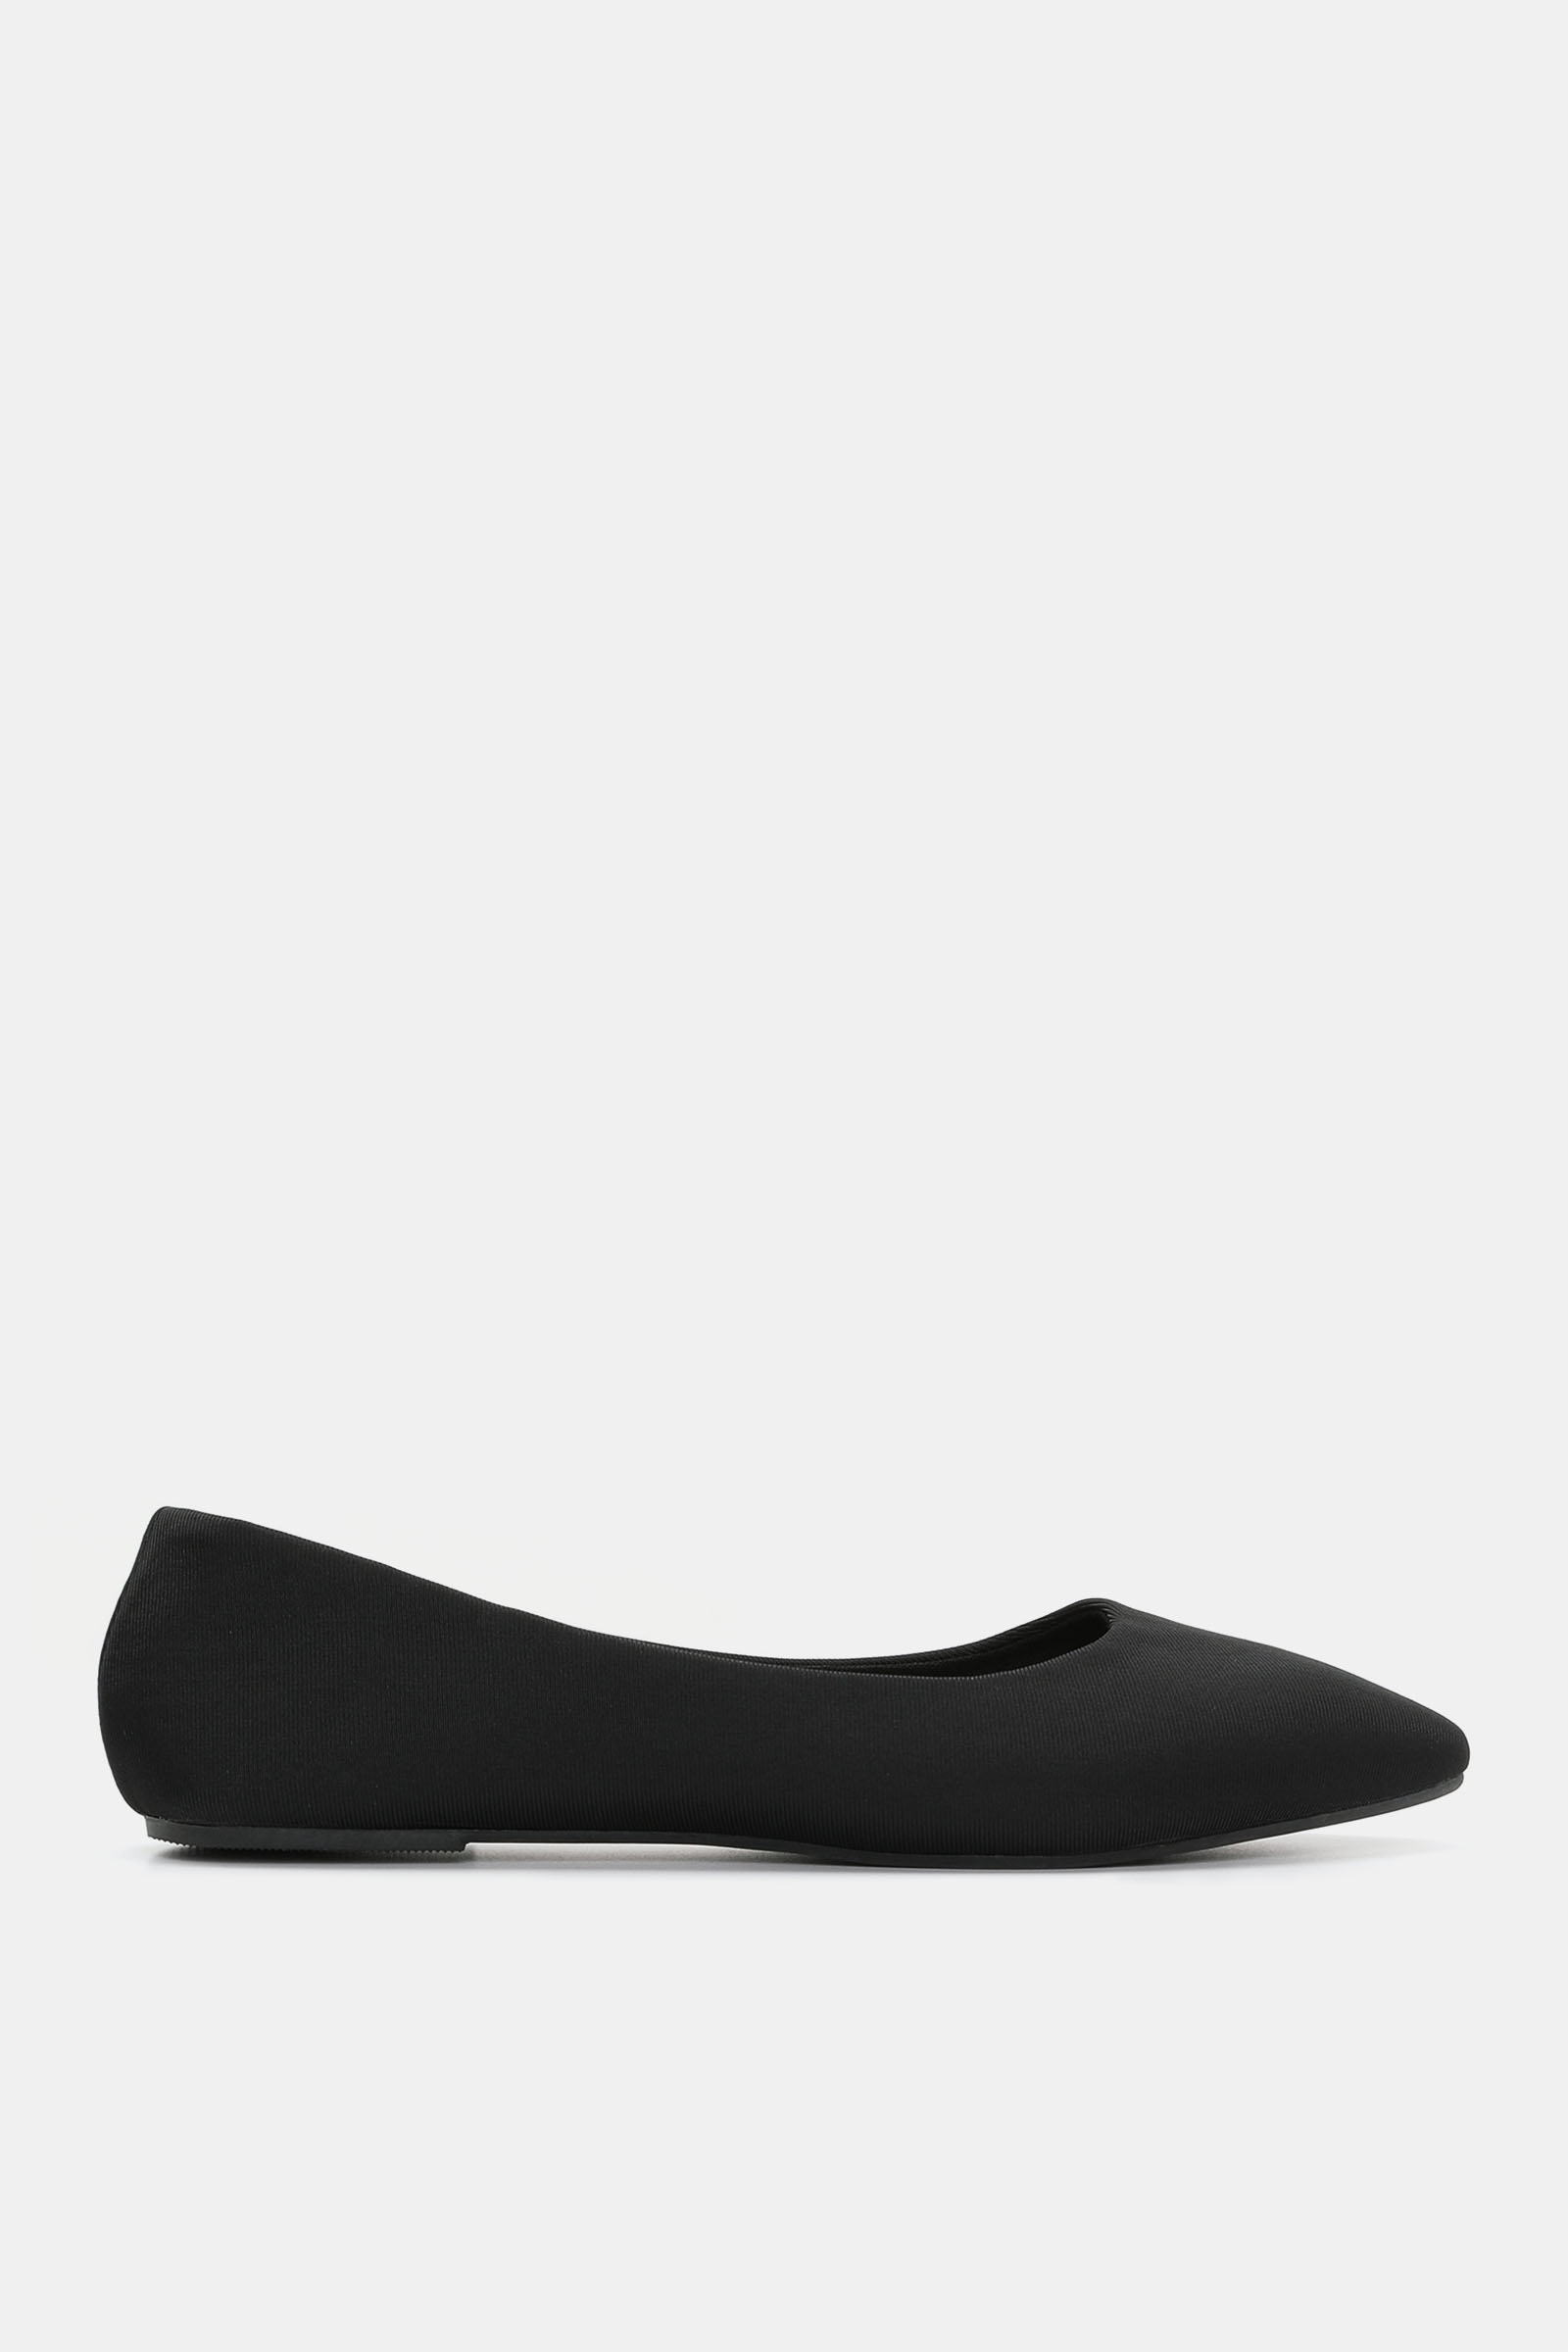 7faef865a5ee Faux Leather Slip-On Flats